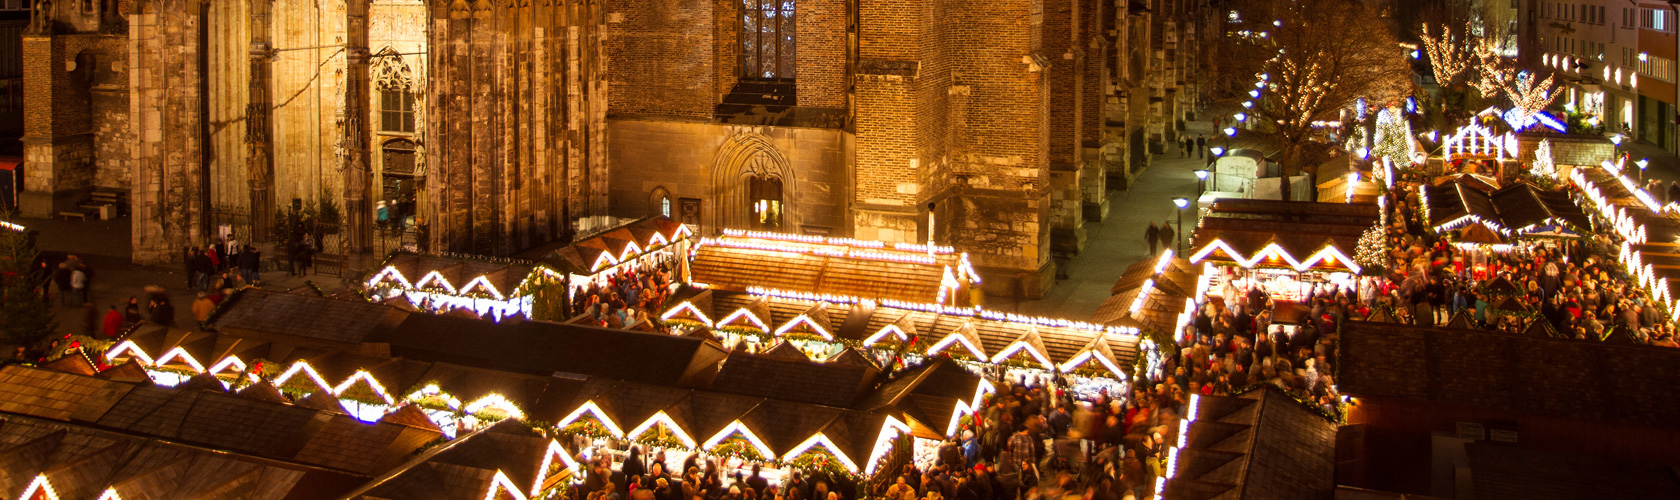 Advent in Ulm